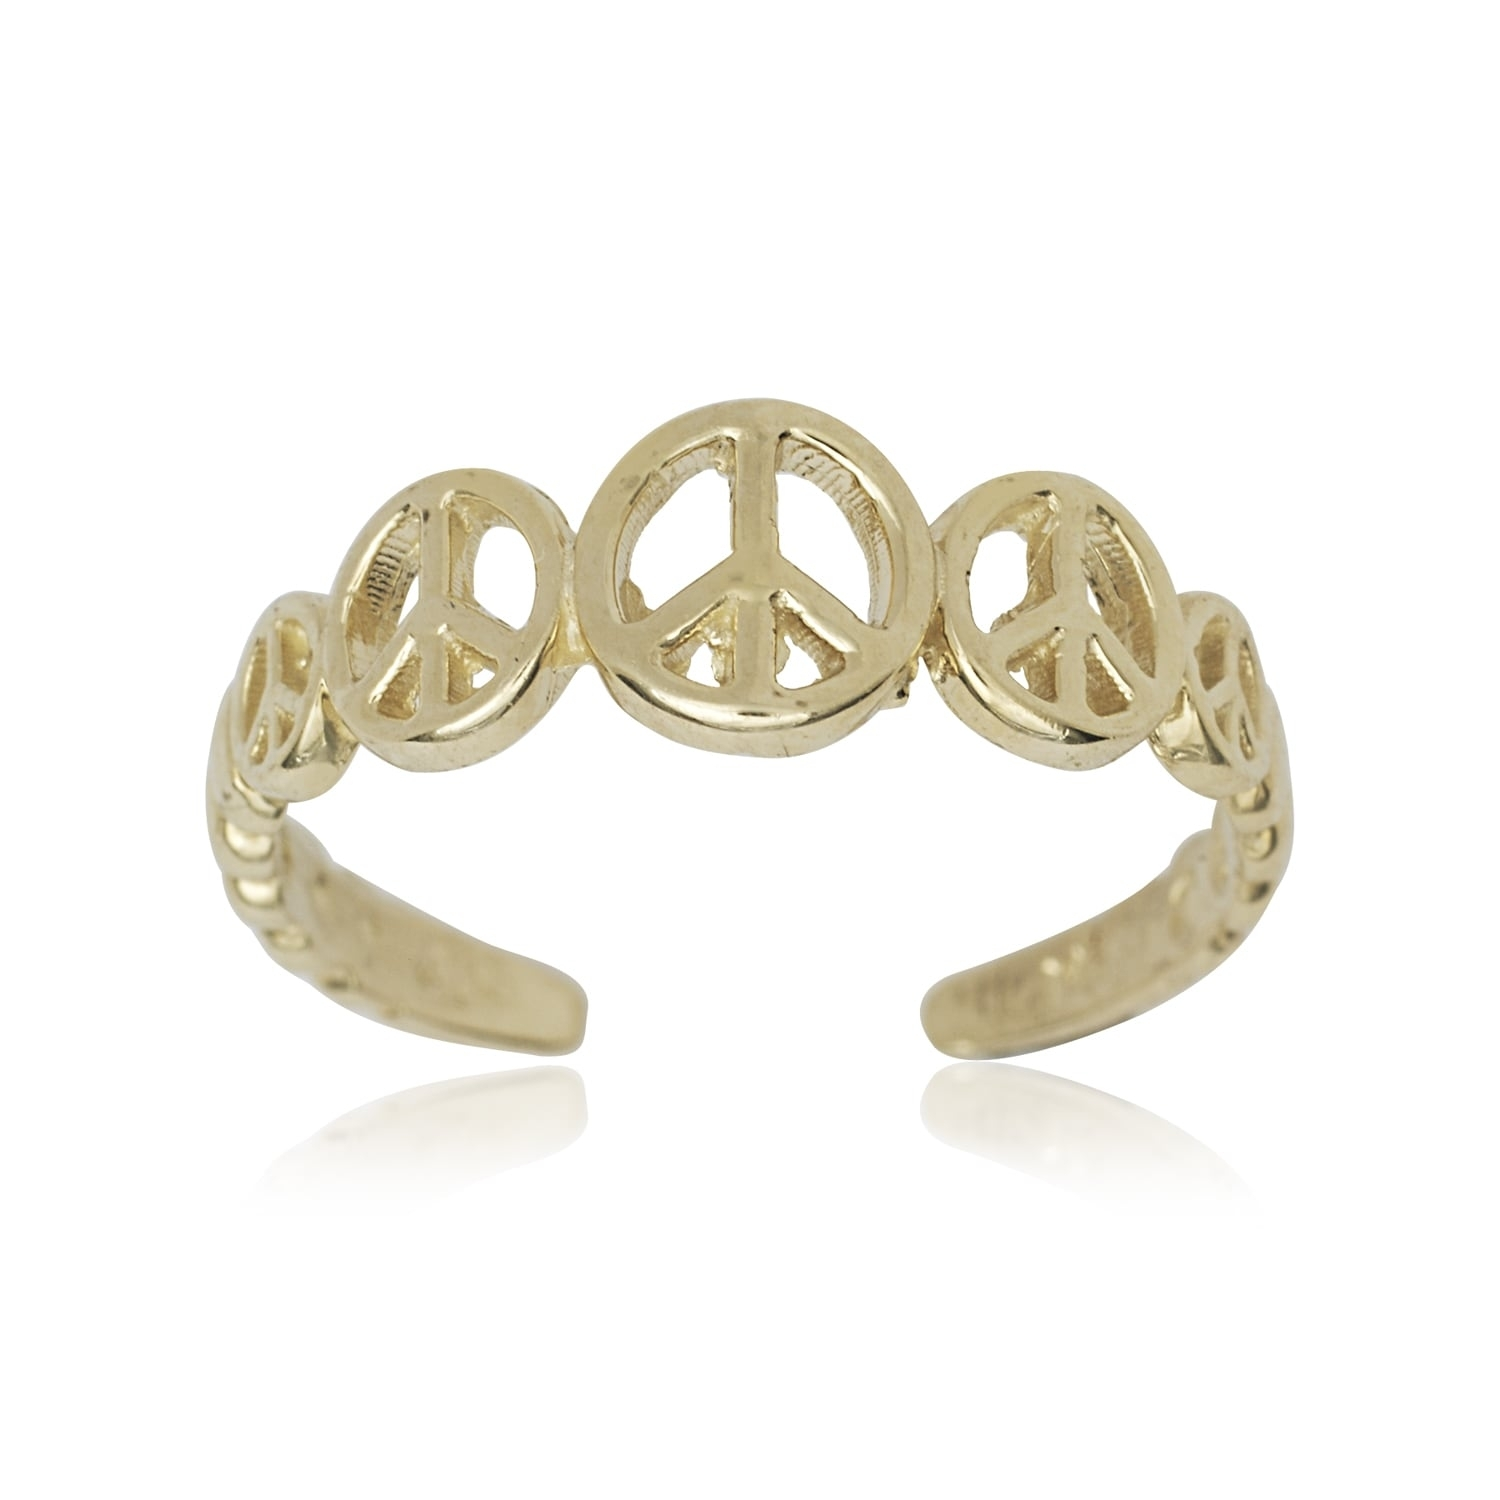 14K Yellow Gold Graduating Peace Sign Adjustable Toe Ring | Ebay With Regard To Newest 14K Toe Rings (Gallery 24 of 25)